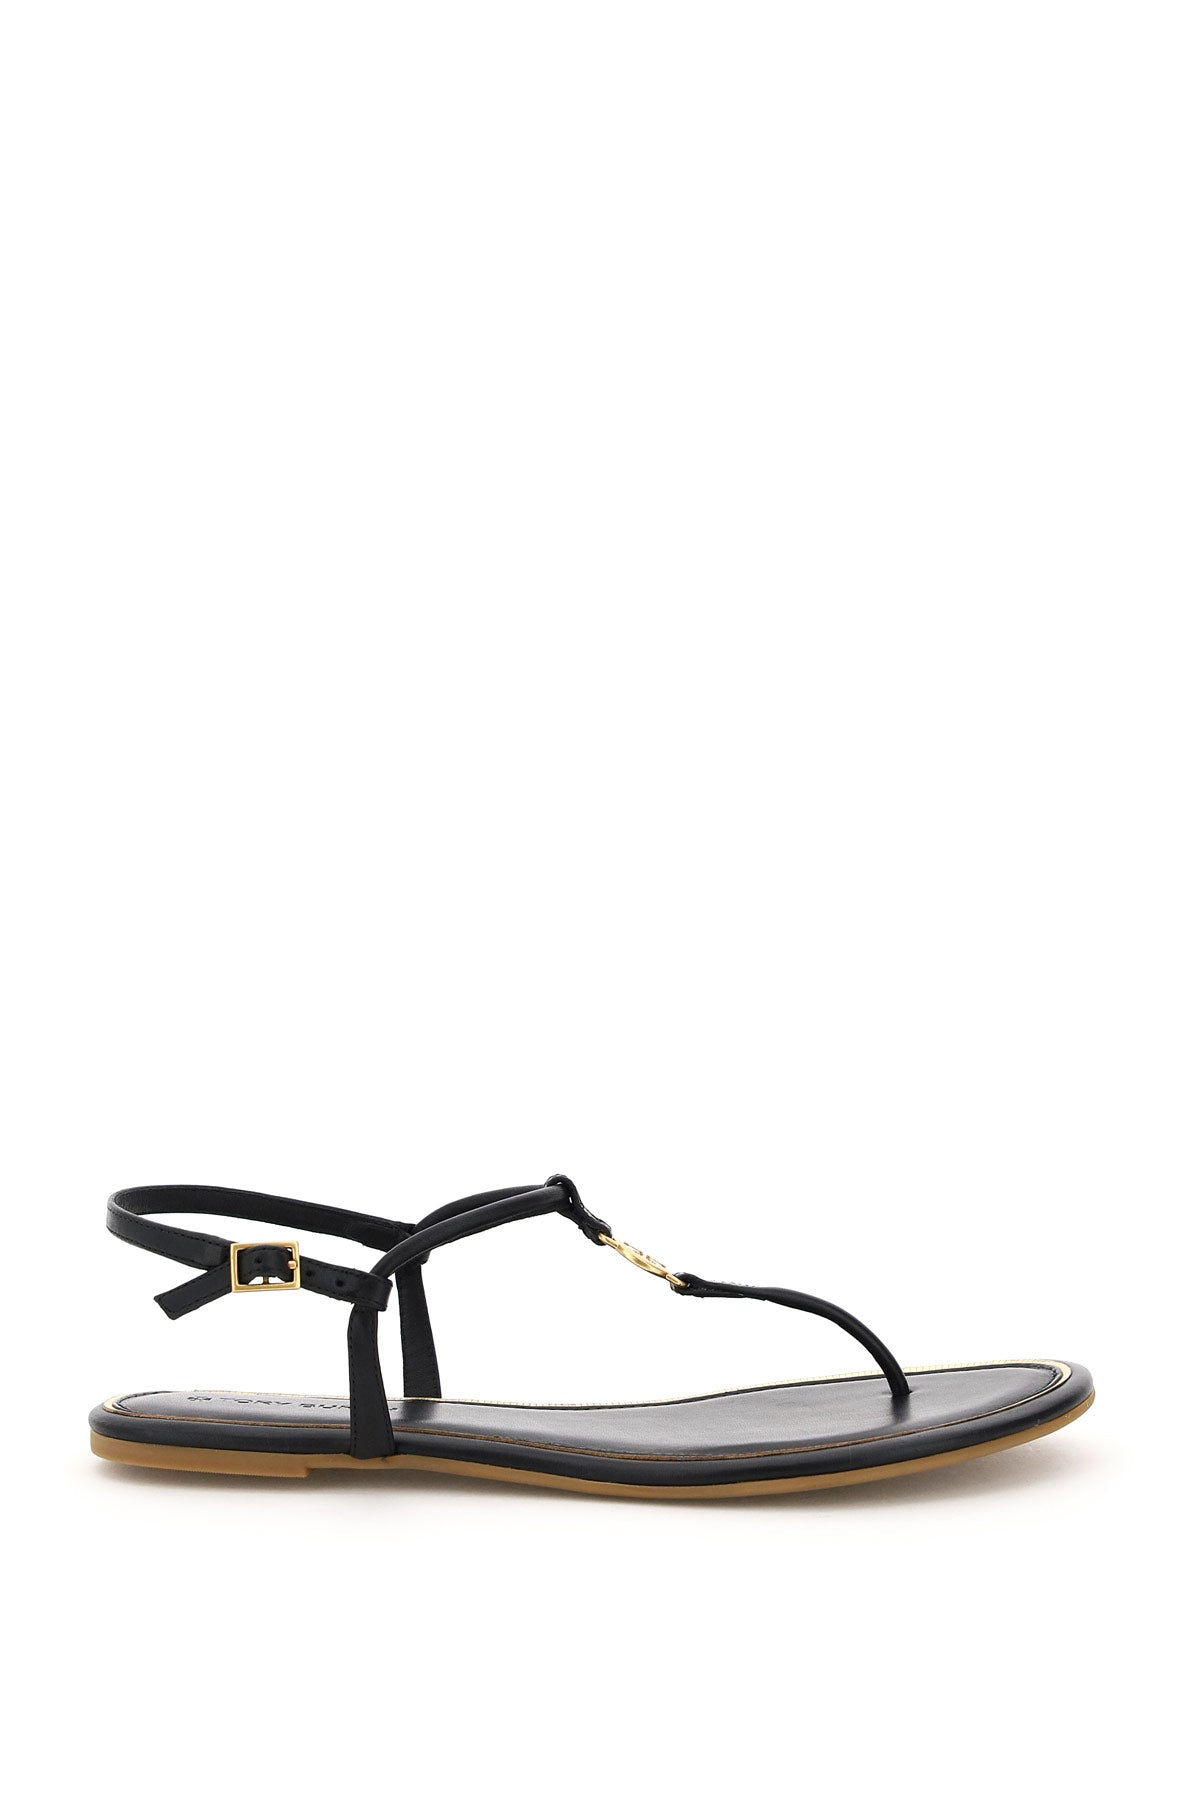 Tory Burch Leathers TORY BURCH EMMY SANDALS